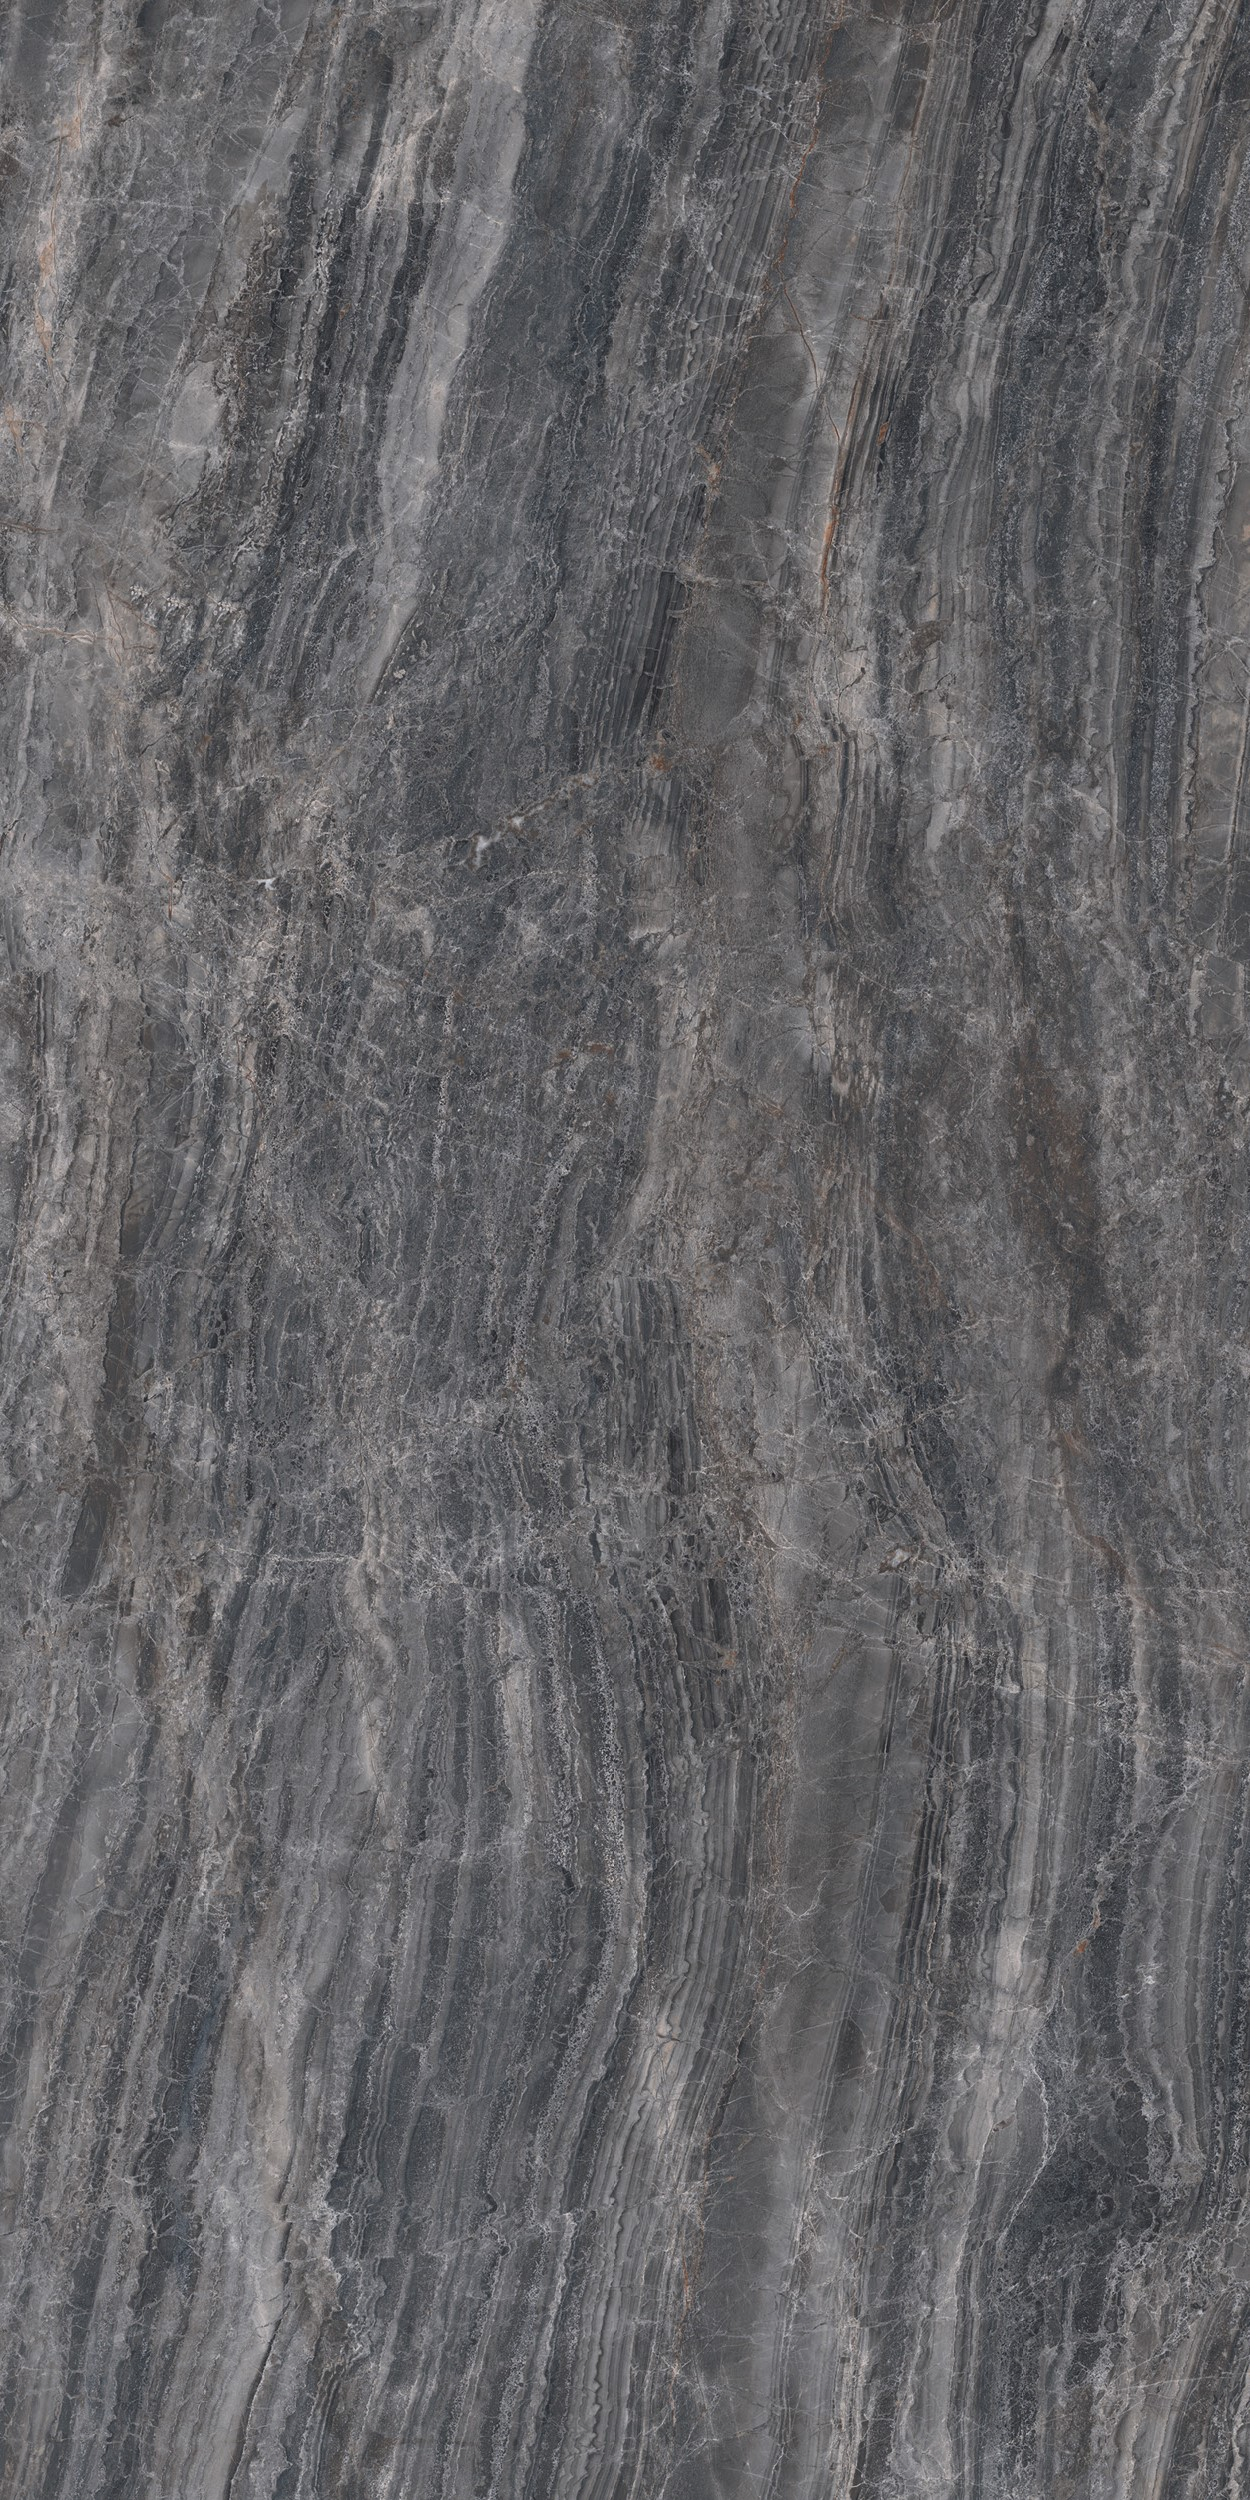 32 X 72 Cosmic Black High Polished Rectified Porcelain Tile (SPECIAL ORDER ONLY)